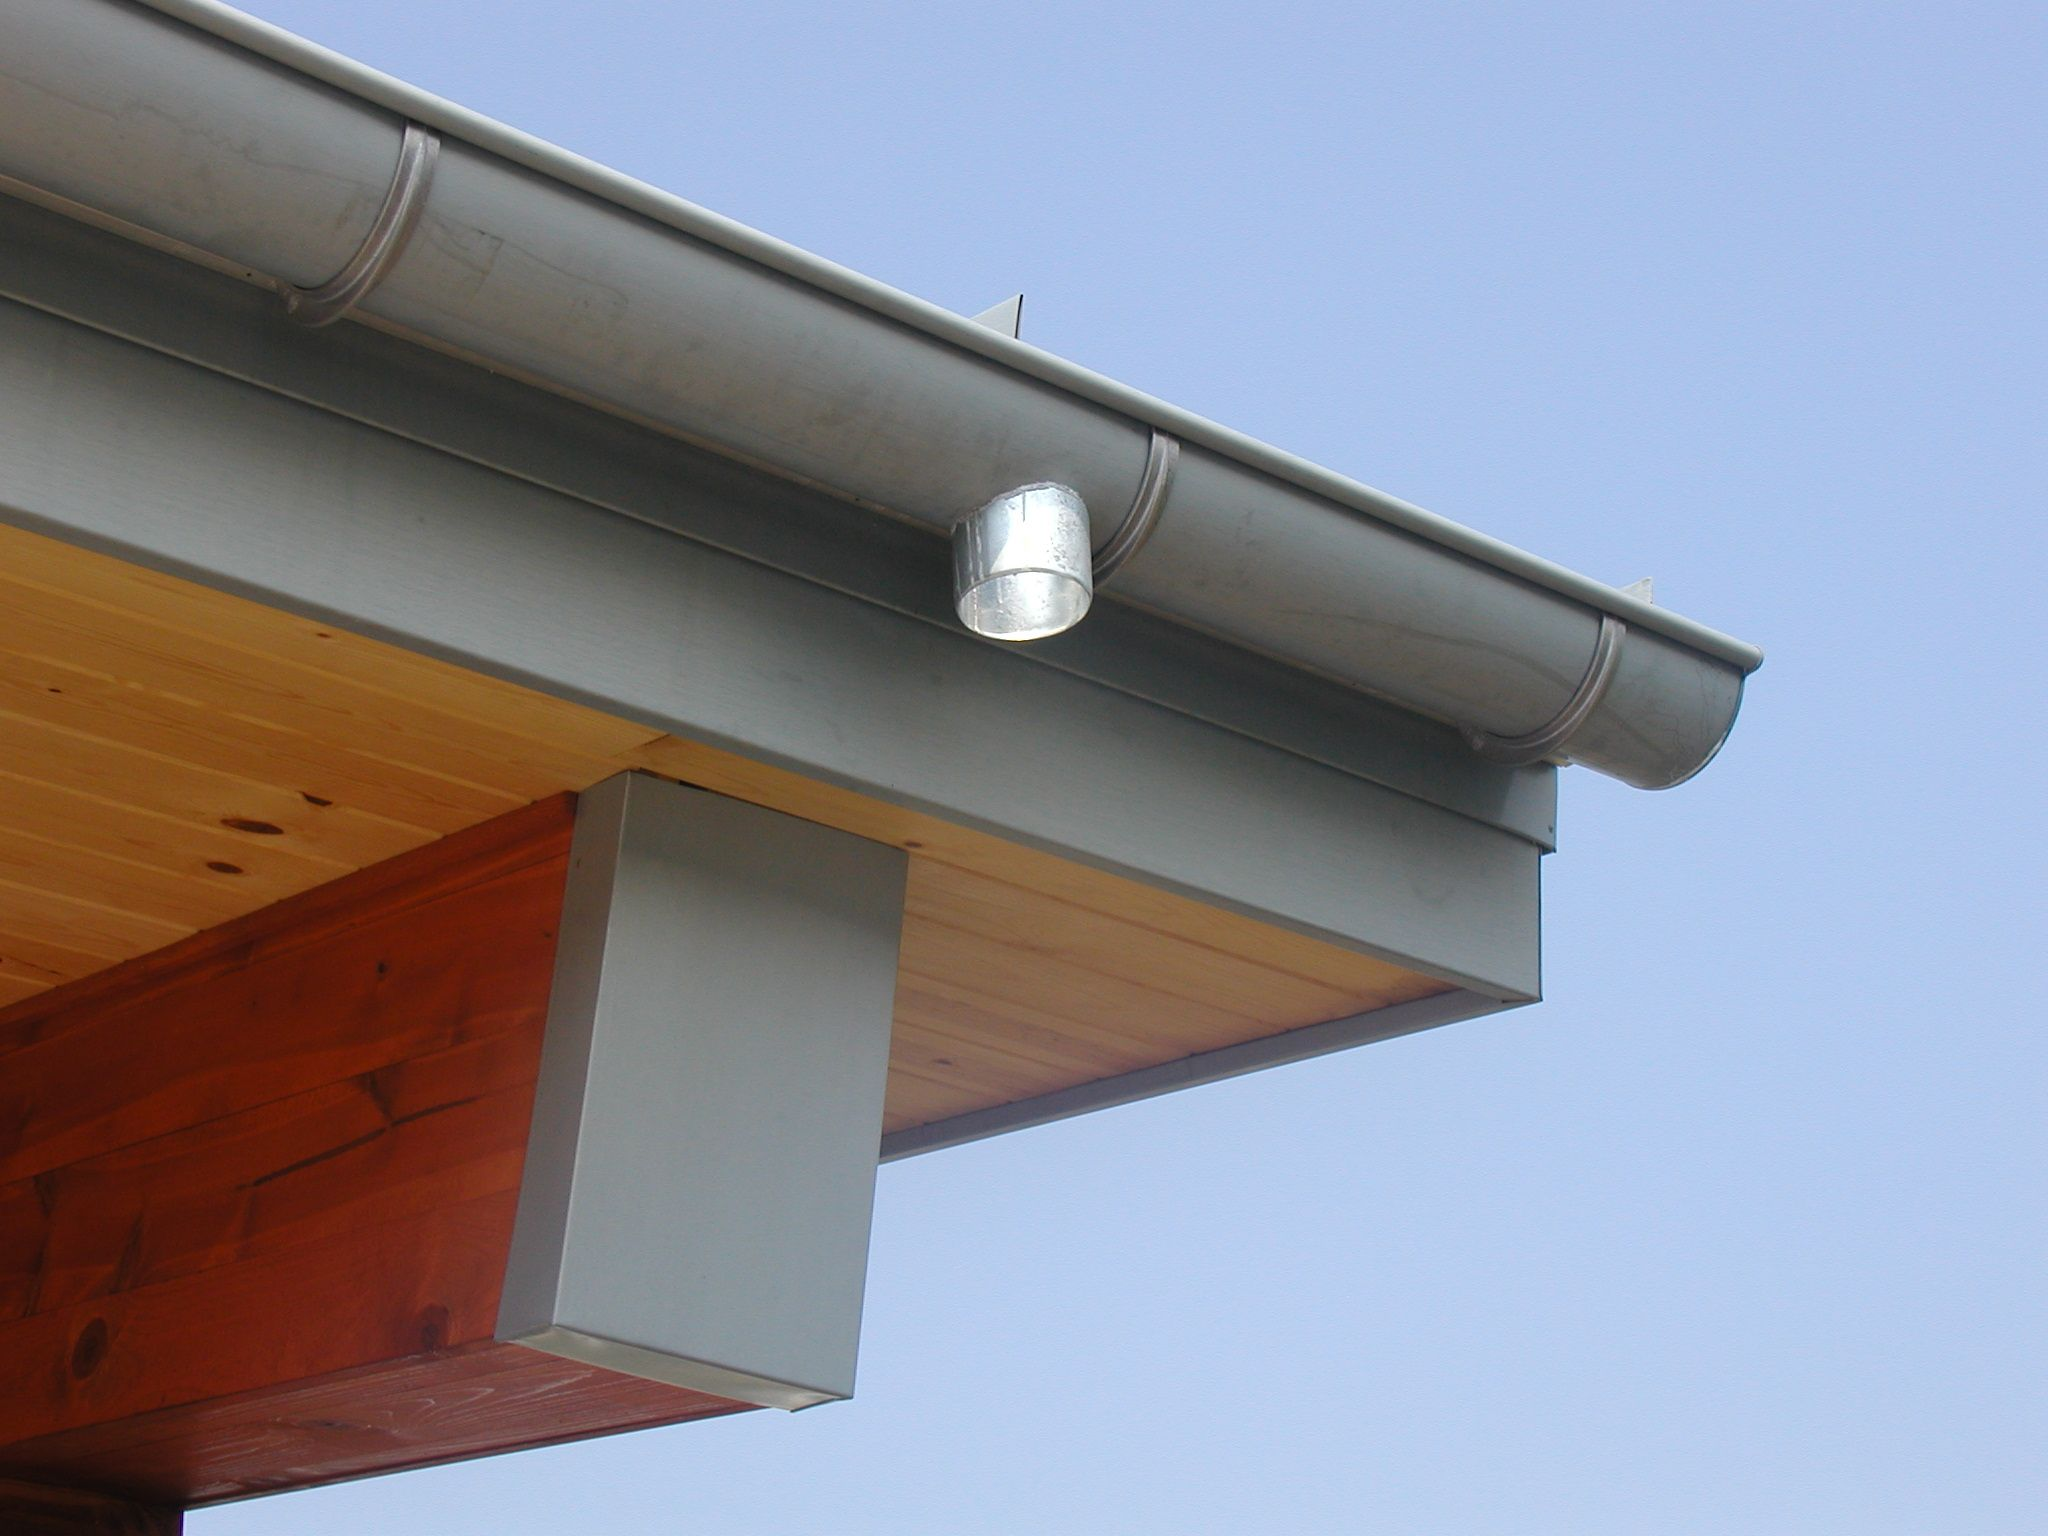 Preweathered Galvalume Google Search Gutters Diy Gutters Fibreglass Roof